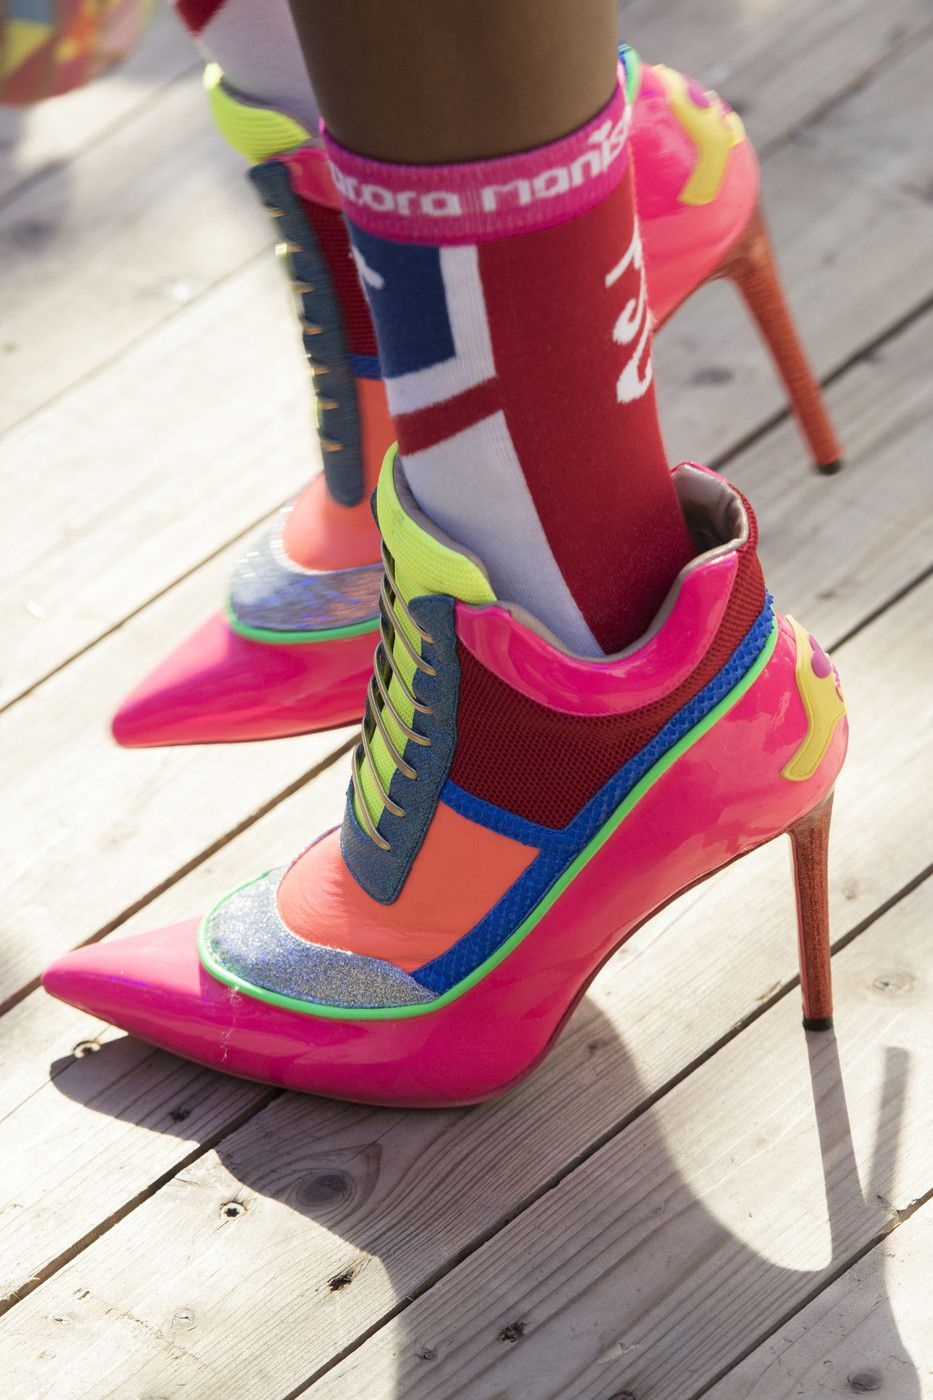 9117372e Manish Arora at Paris Fashion Week Spring 2019 in 2019   Shoes with ...